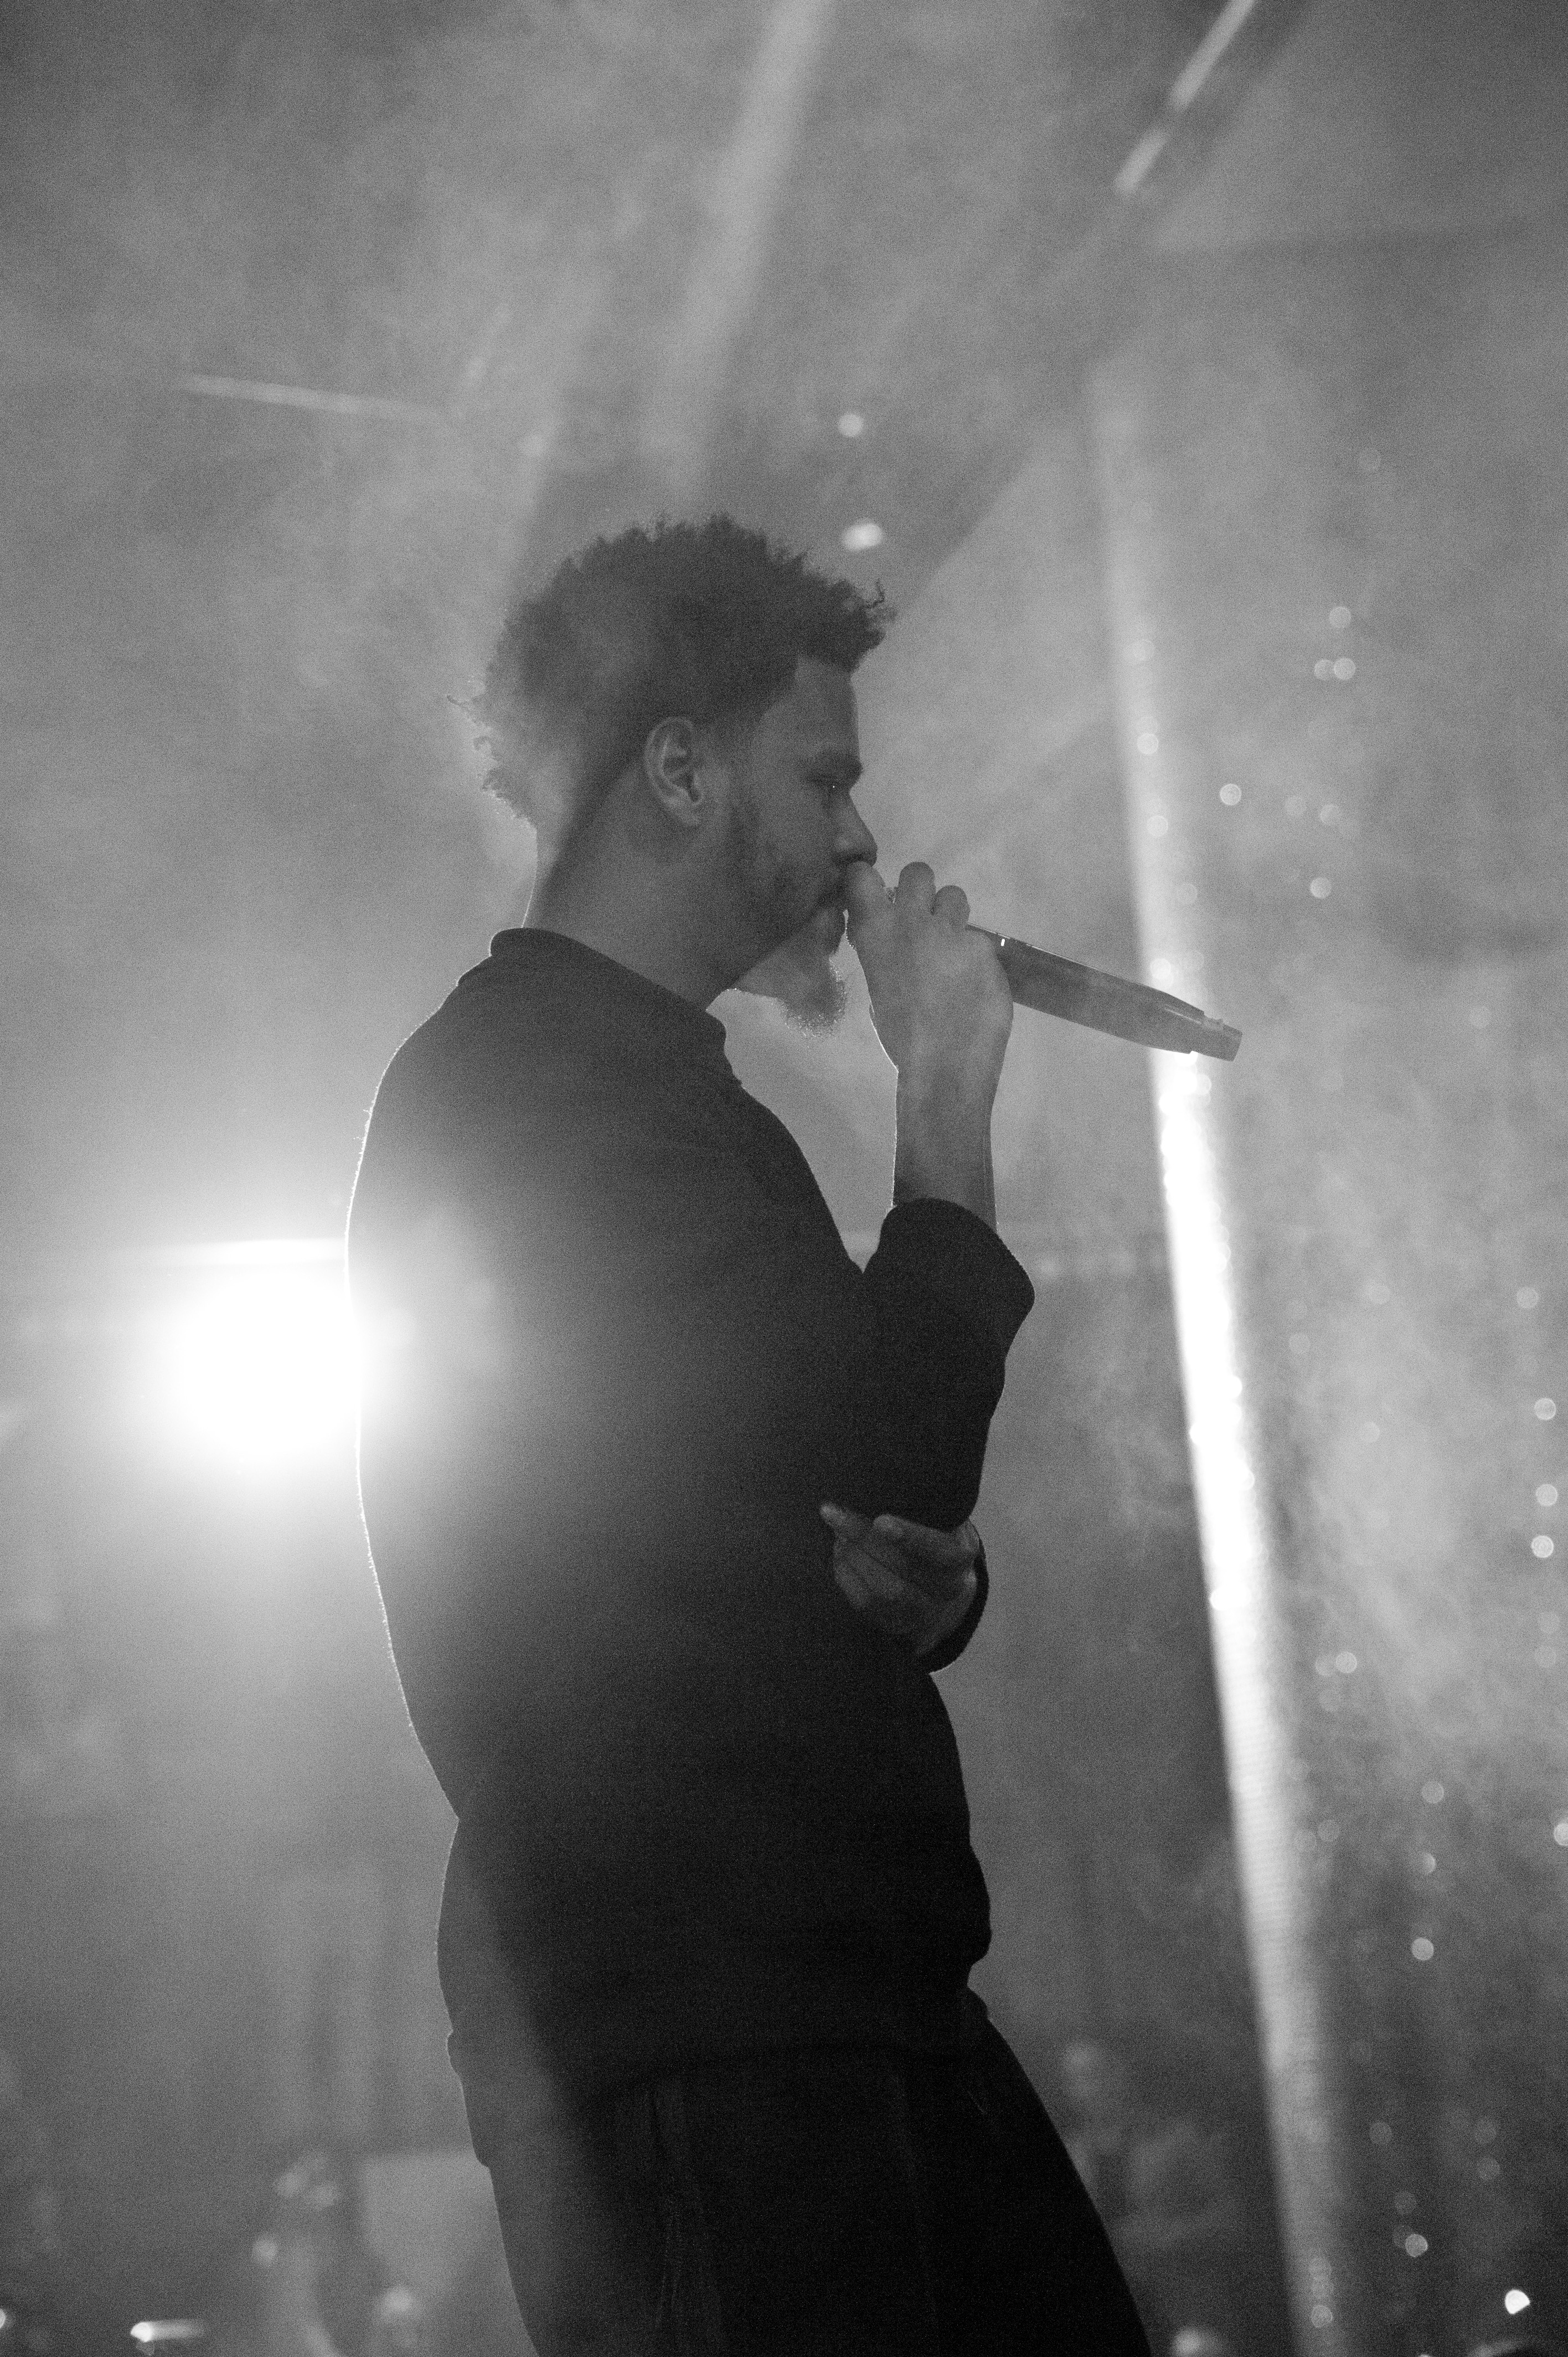 J. Cole Says He Prefers Storytelling Rather Than Battling With His Music